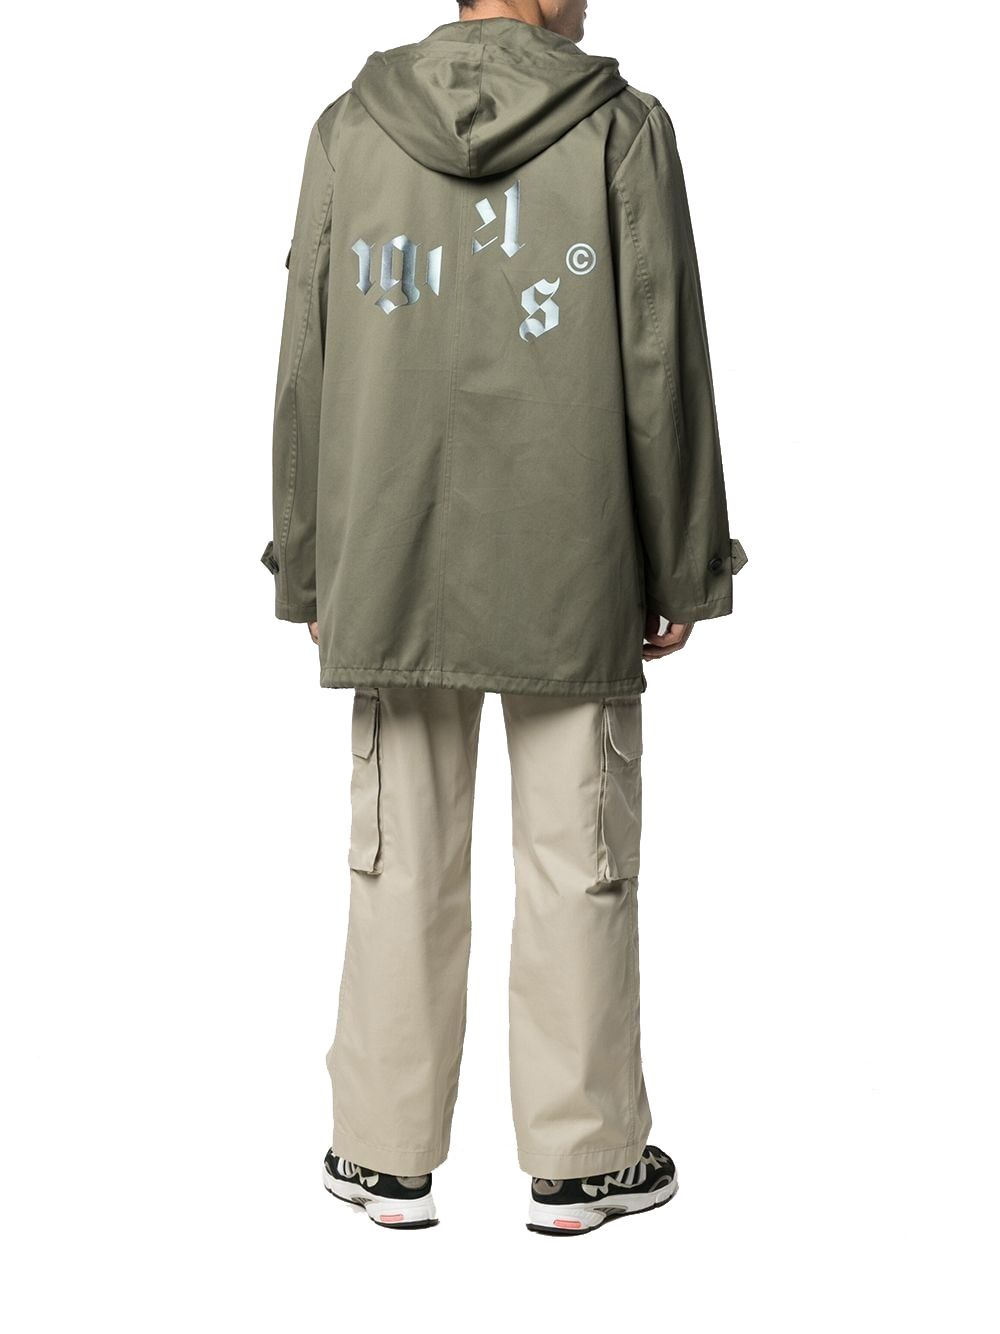 PALM ANGELS Cottons PALM ANGELS MEN'S GREEN COTTON OUTERWEAR JACKET